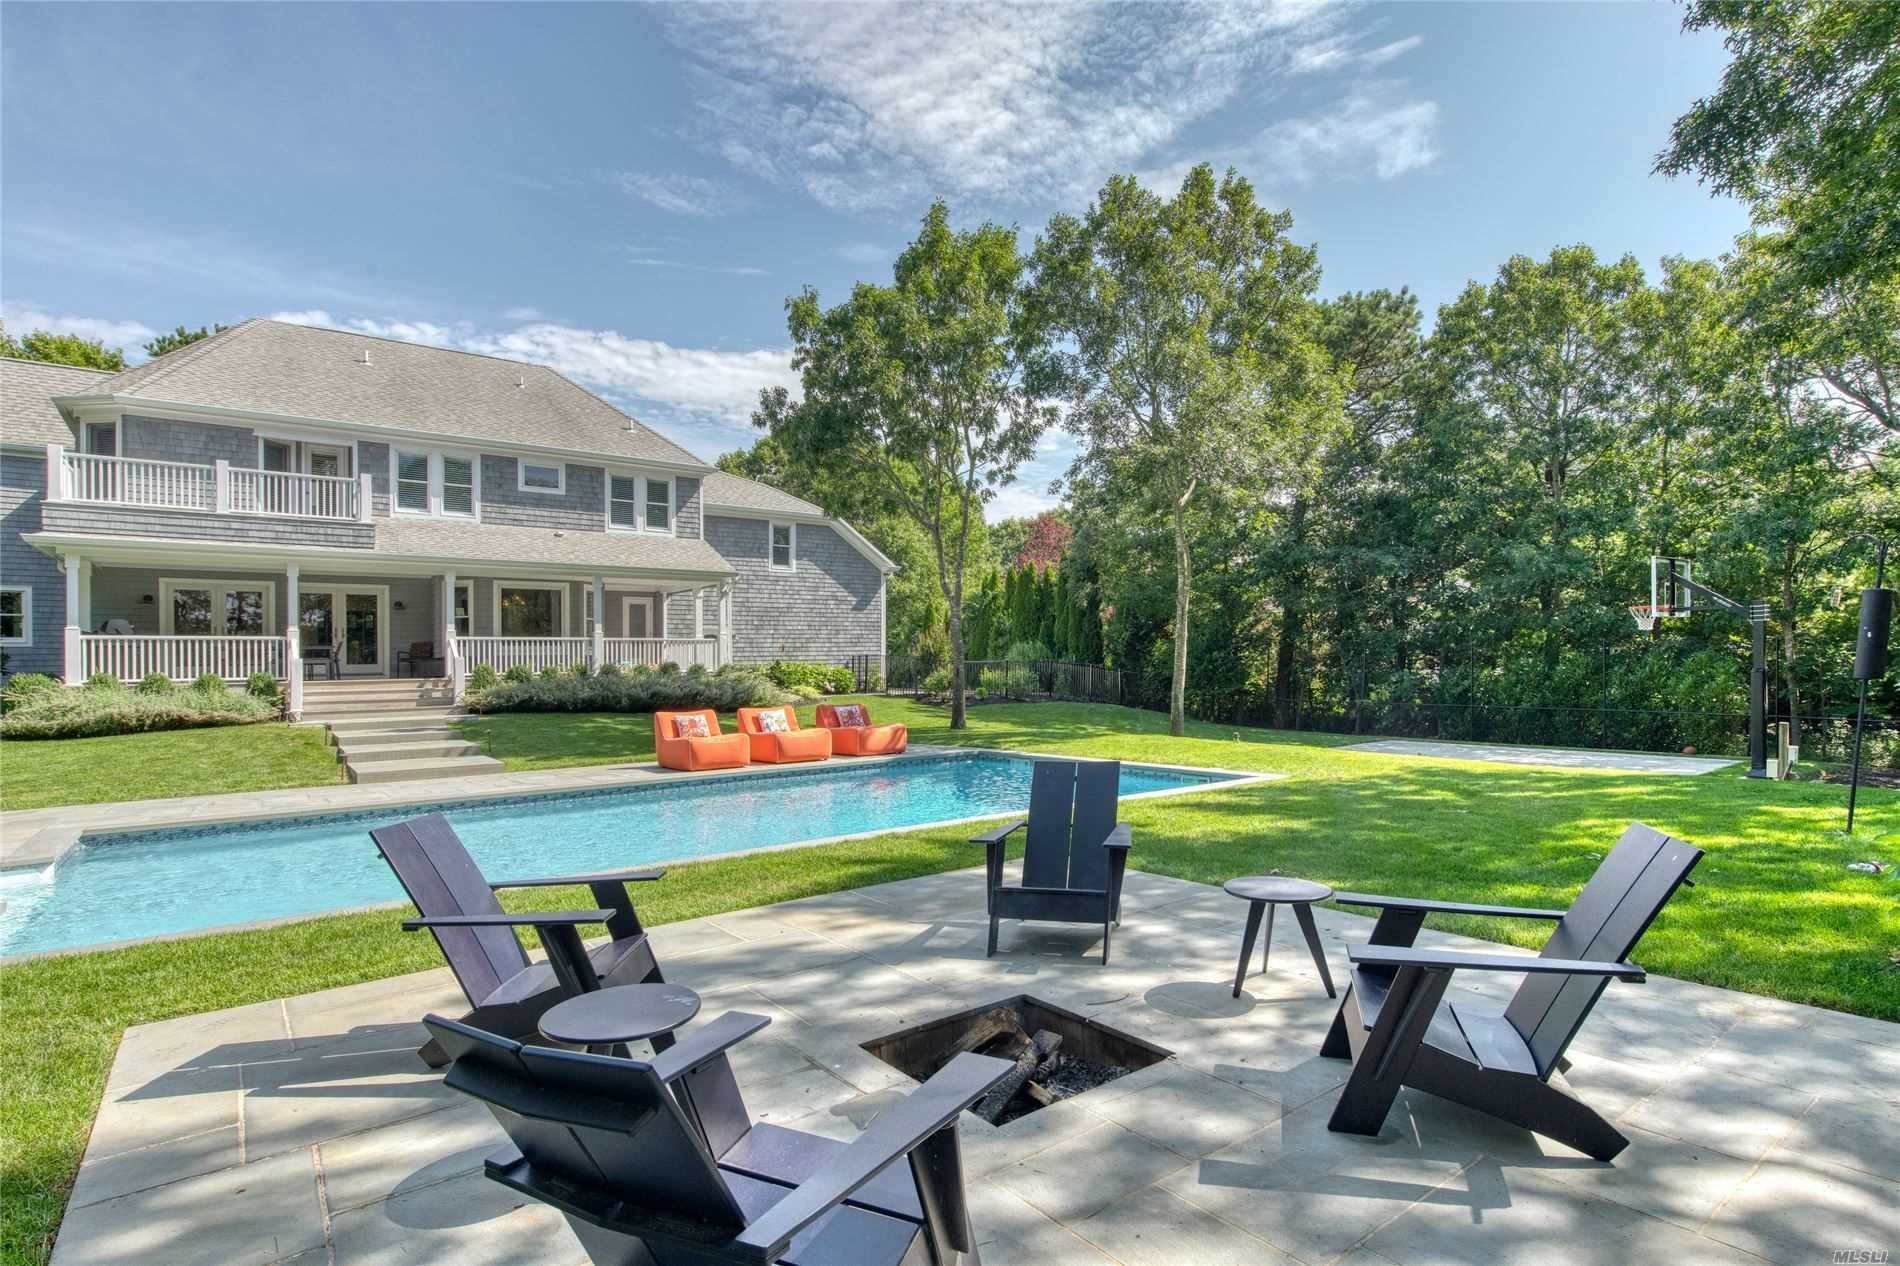 141 Maggie Drive, East Quogue, NY 11942 - MLS#: 3236960